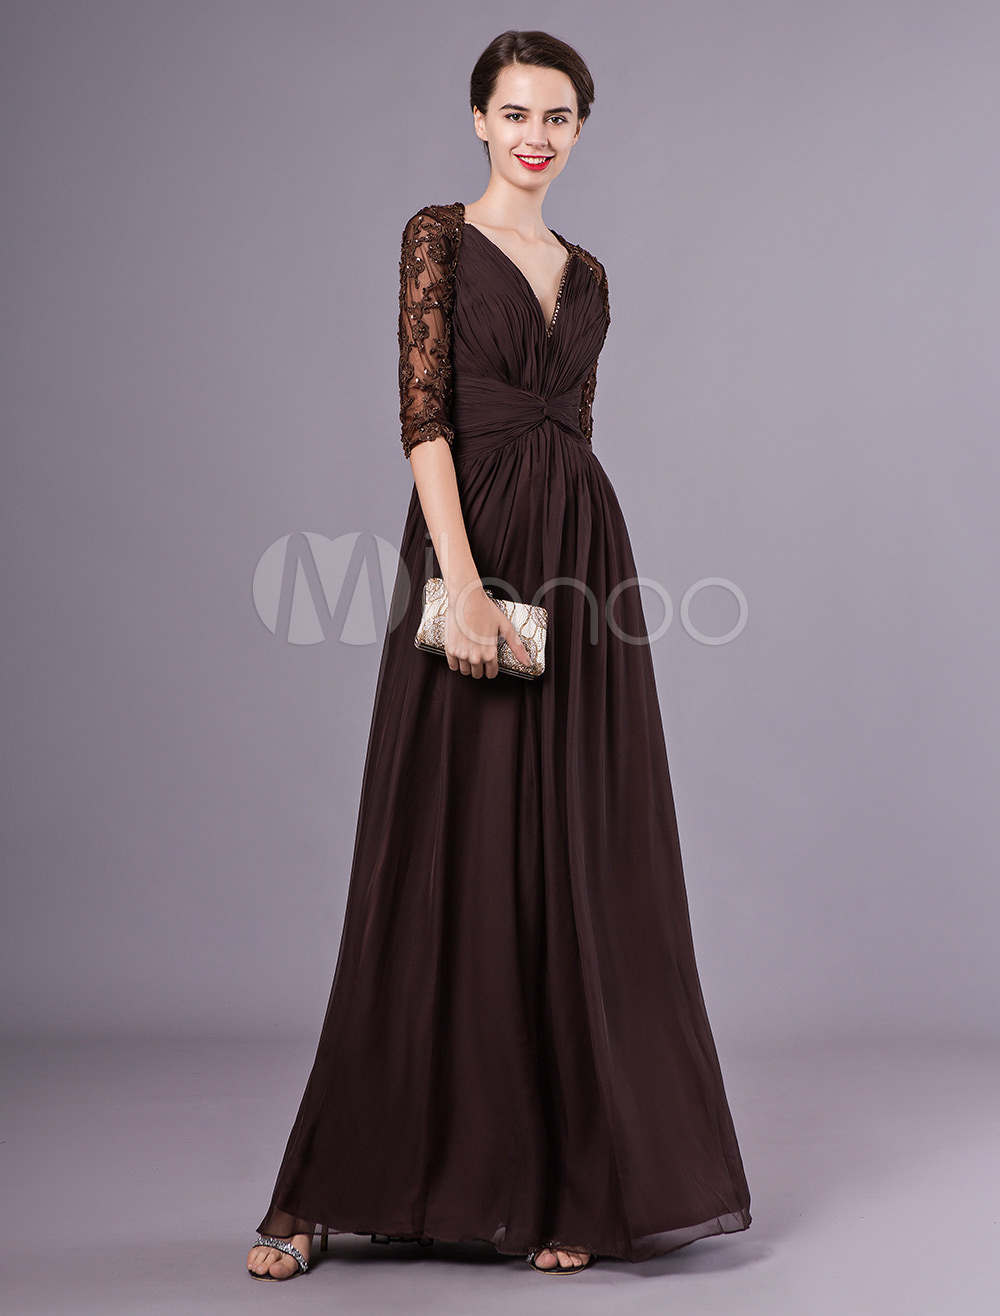 2b38350eceb6 Chocolate Dress For Mother of the Bride with A-line Skirt V-Neck ...